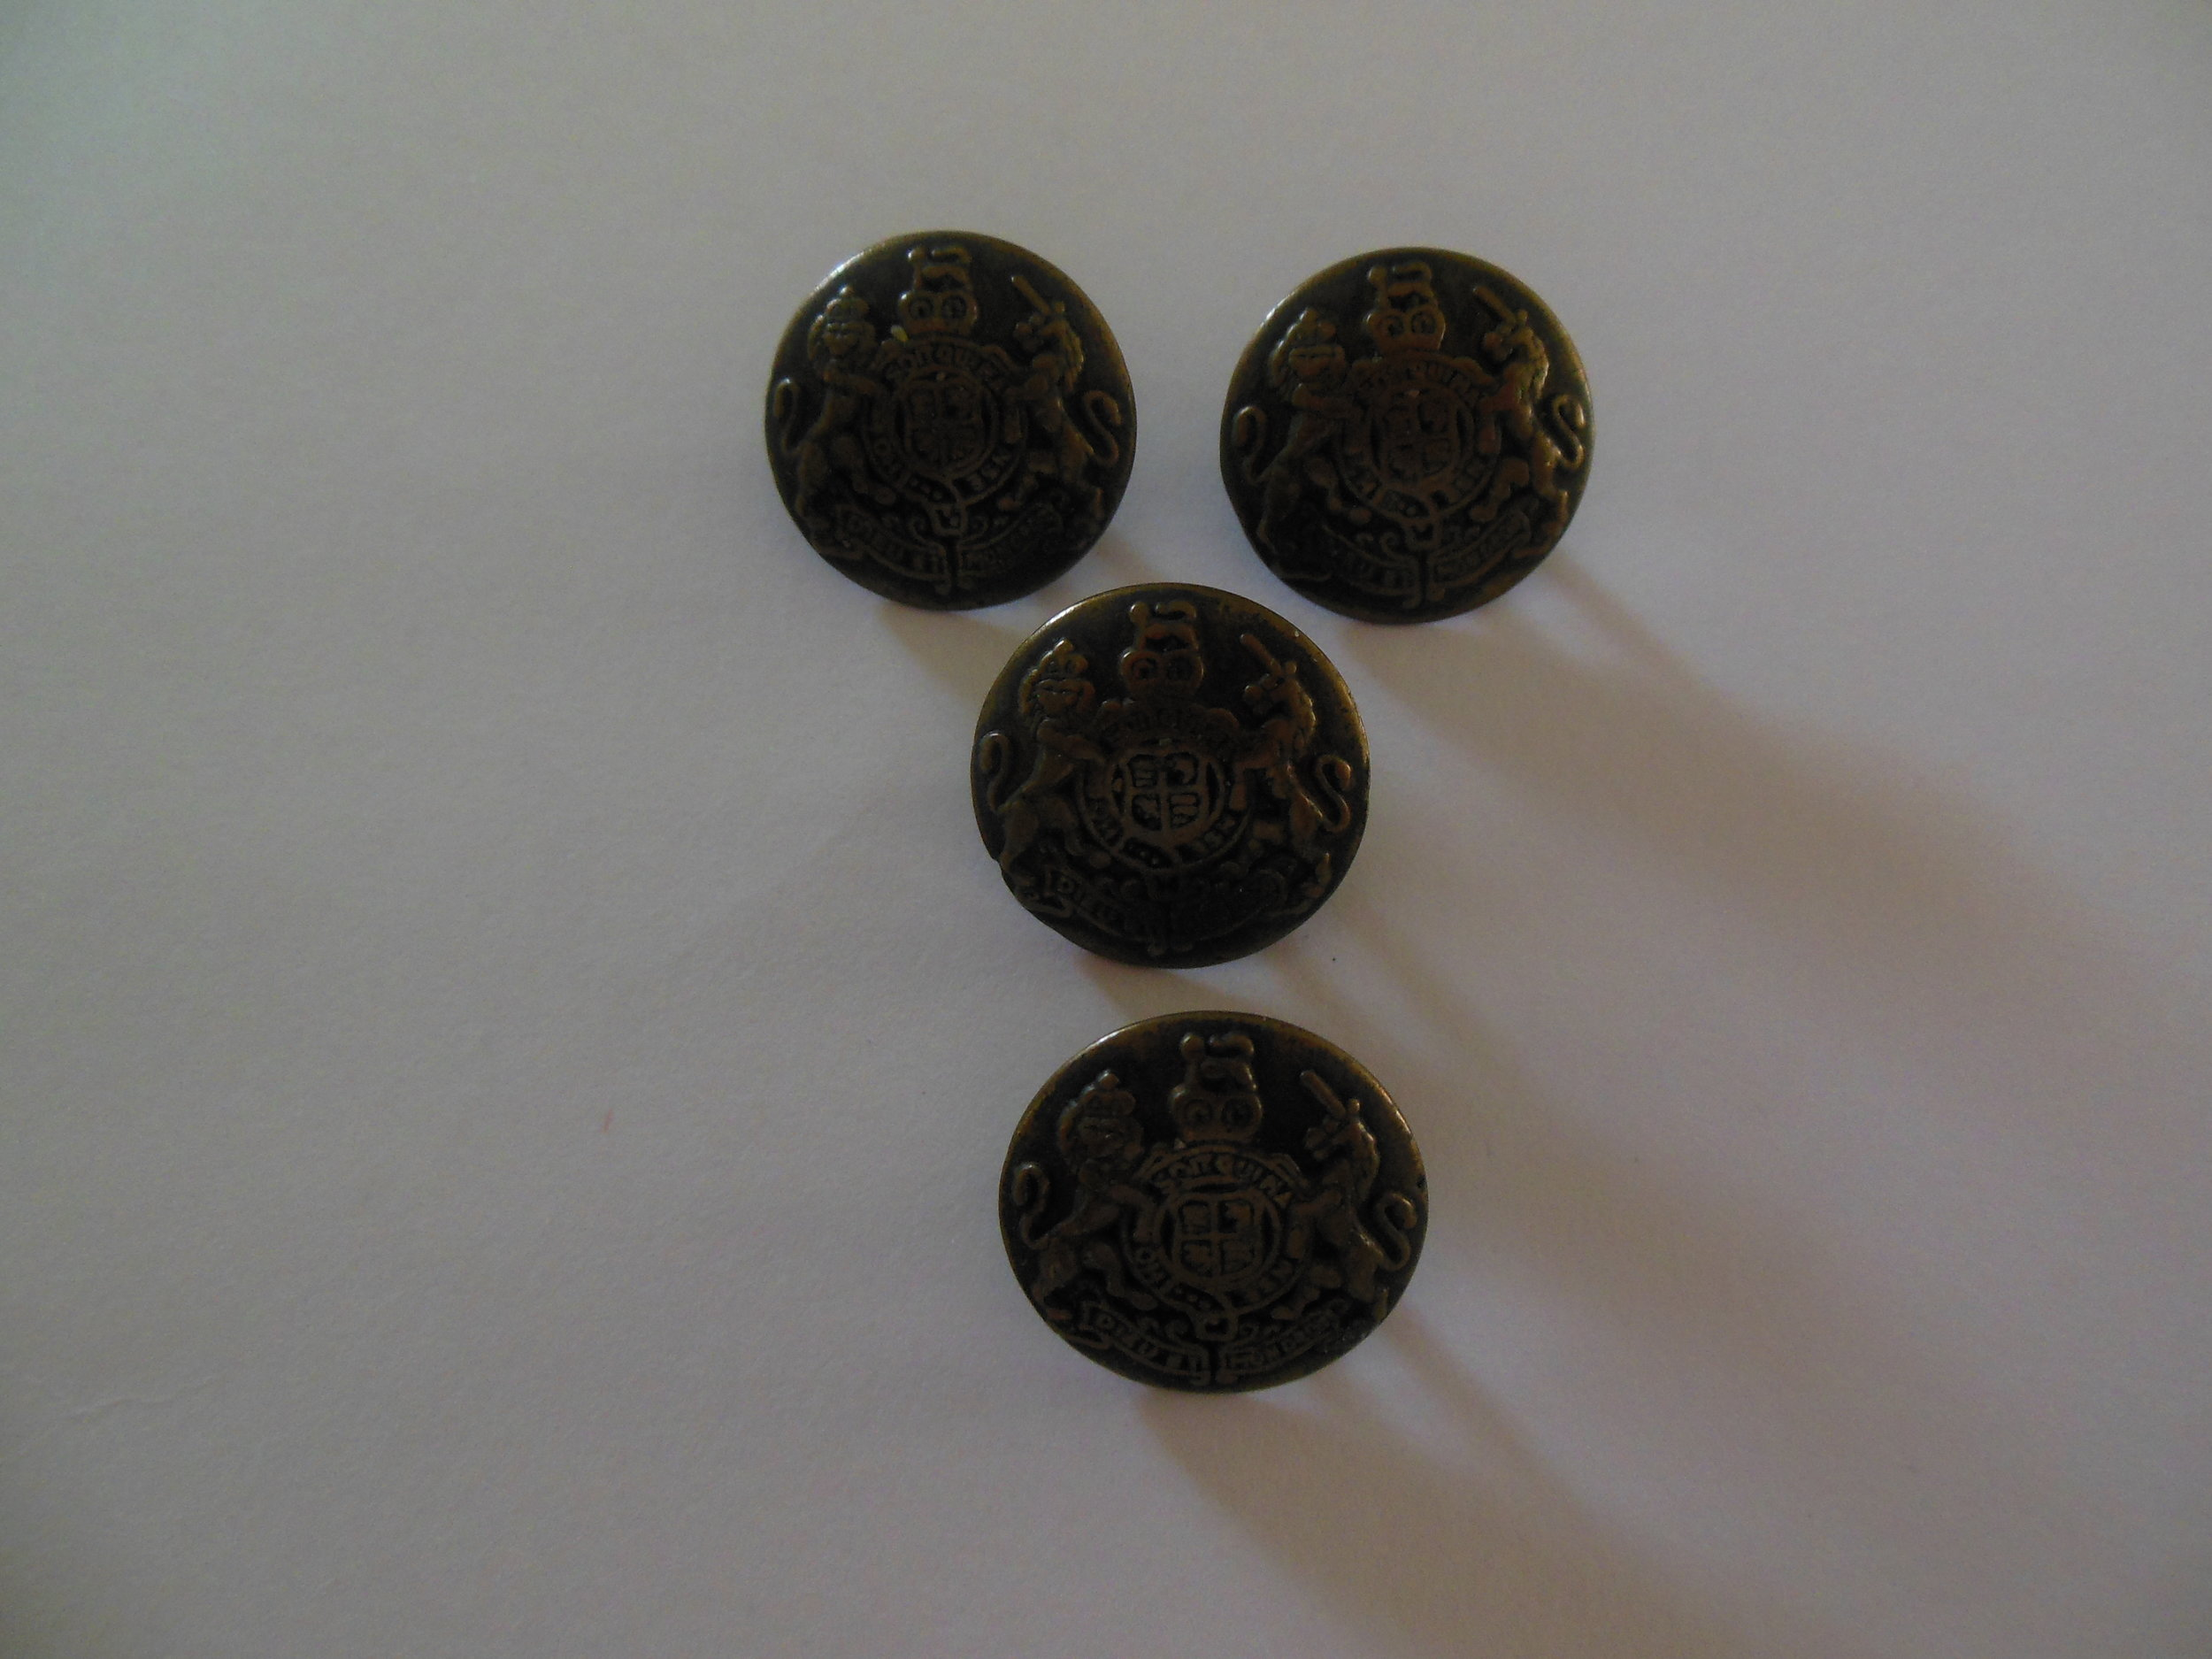 British Army Buttons with the Royal Crest showing a lion and unicorn.